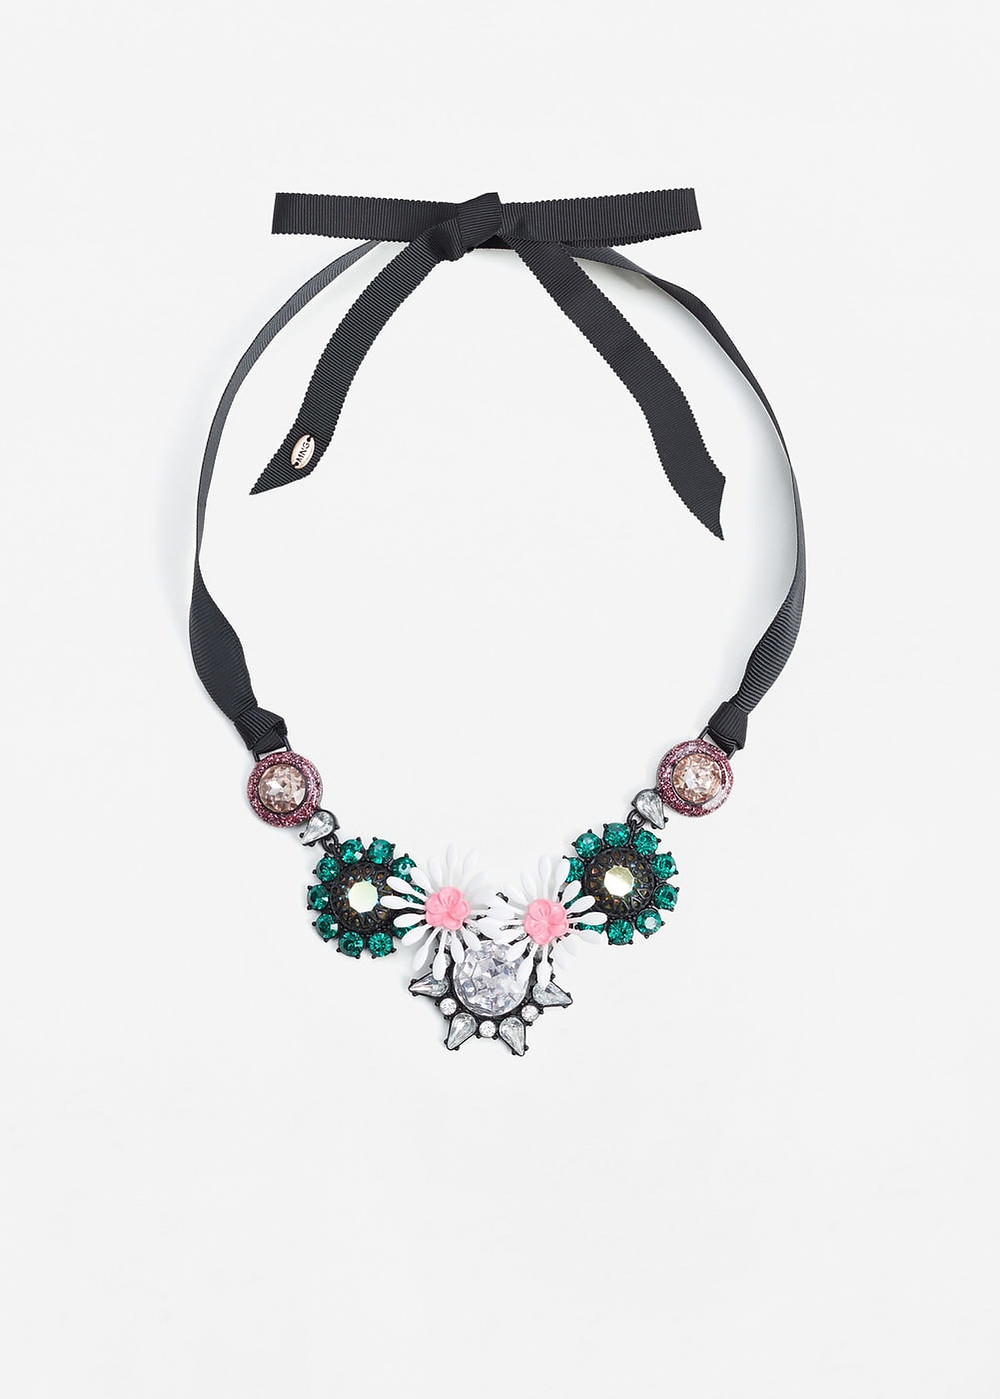 Mango Bow crystals necklace now $14.99